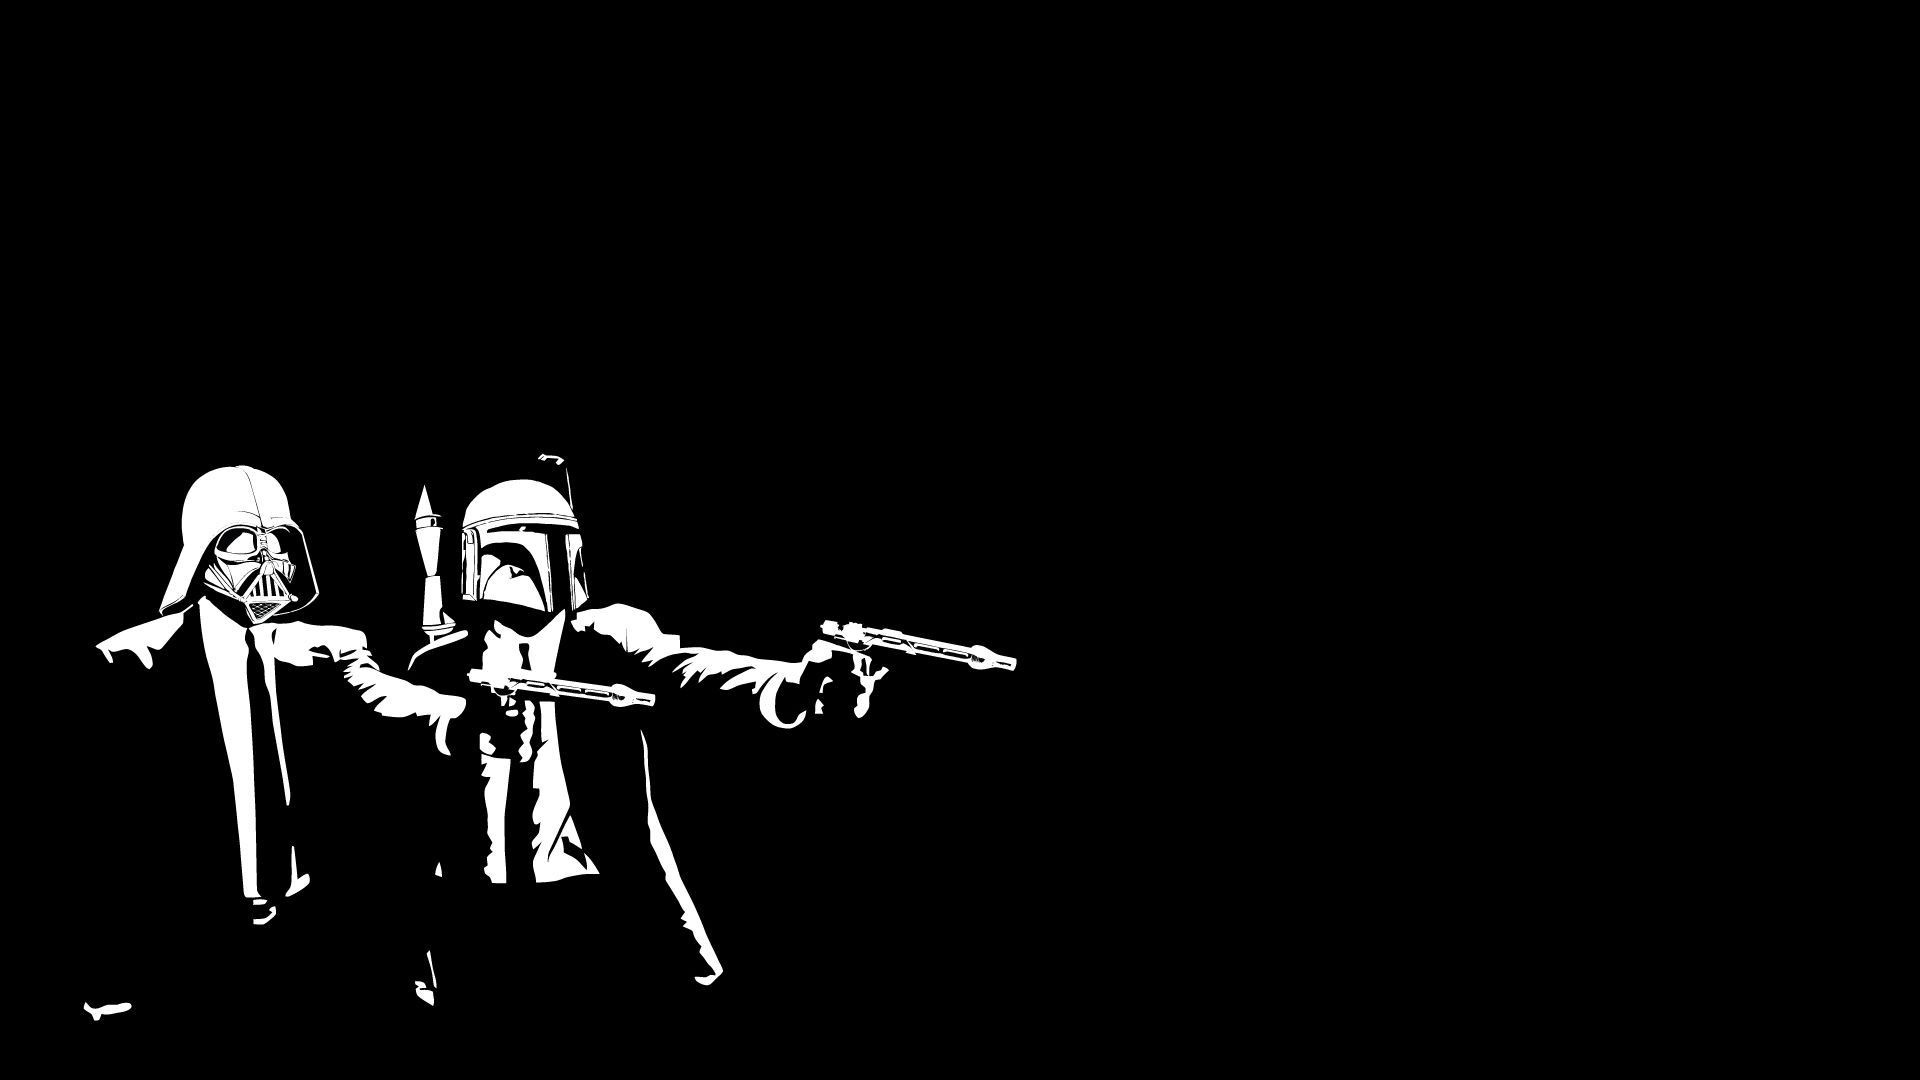 star wars pulp fiction wallpaper (57+ images)